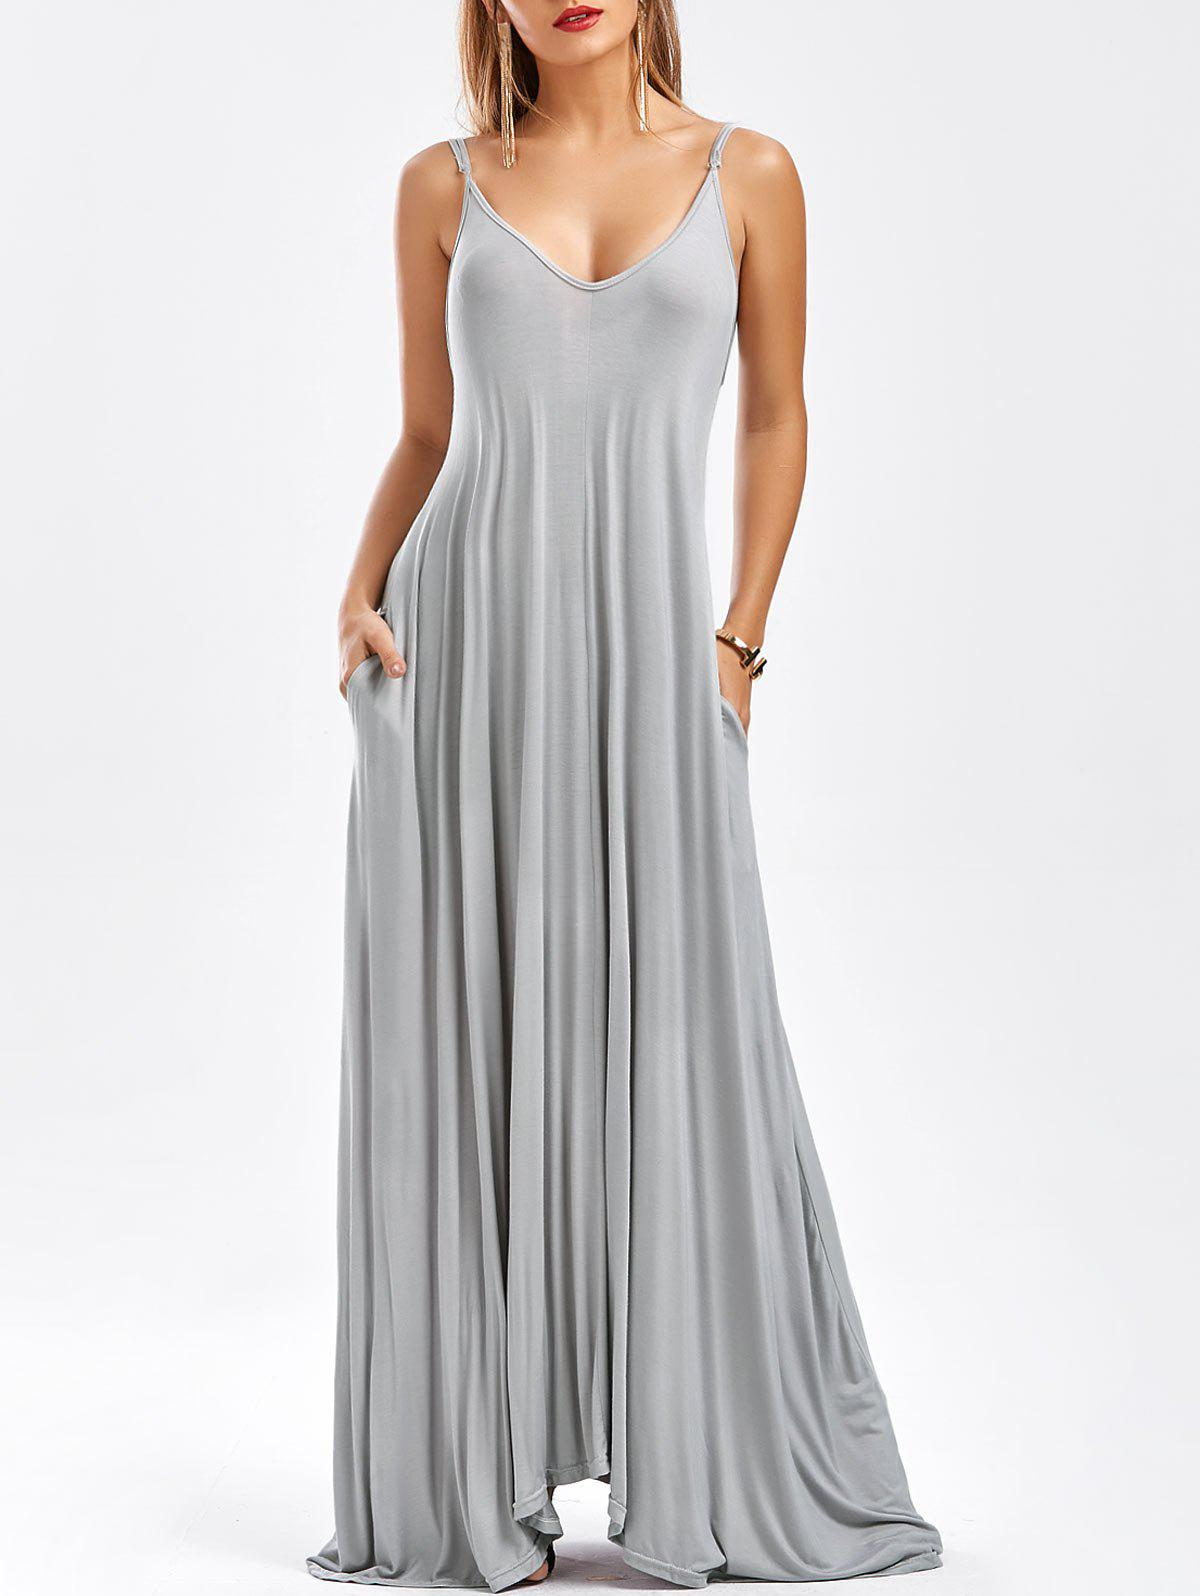 2018 Pockets Long Maxi Slip Dress In Light Gray Xl | Rosegal.com